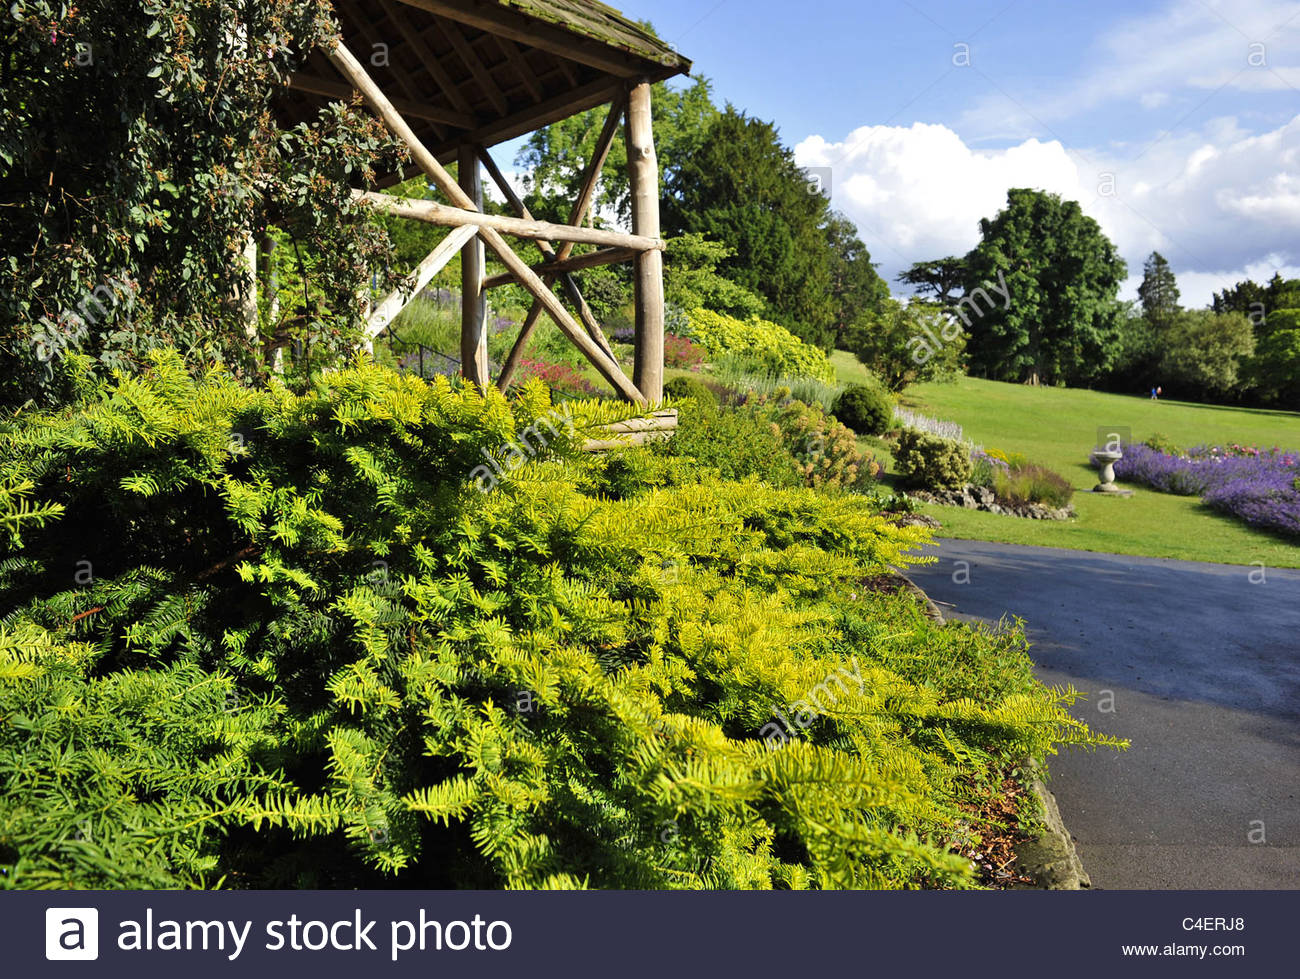 Wooden Pergola and conifer trees in Terrace Gardens Richmond London UK - Stock Image